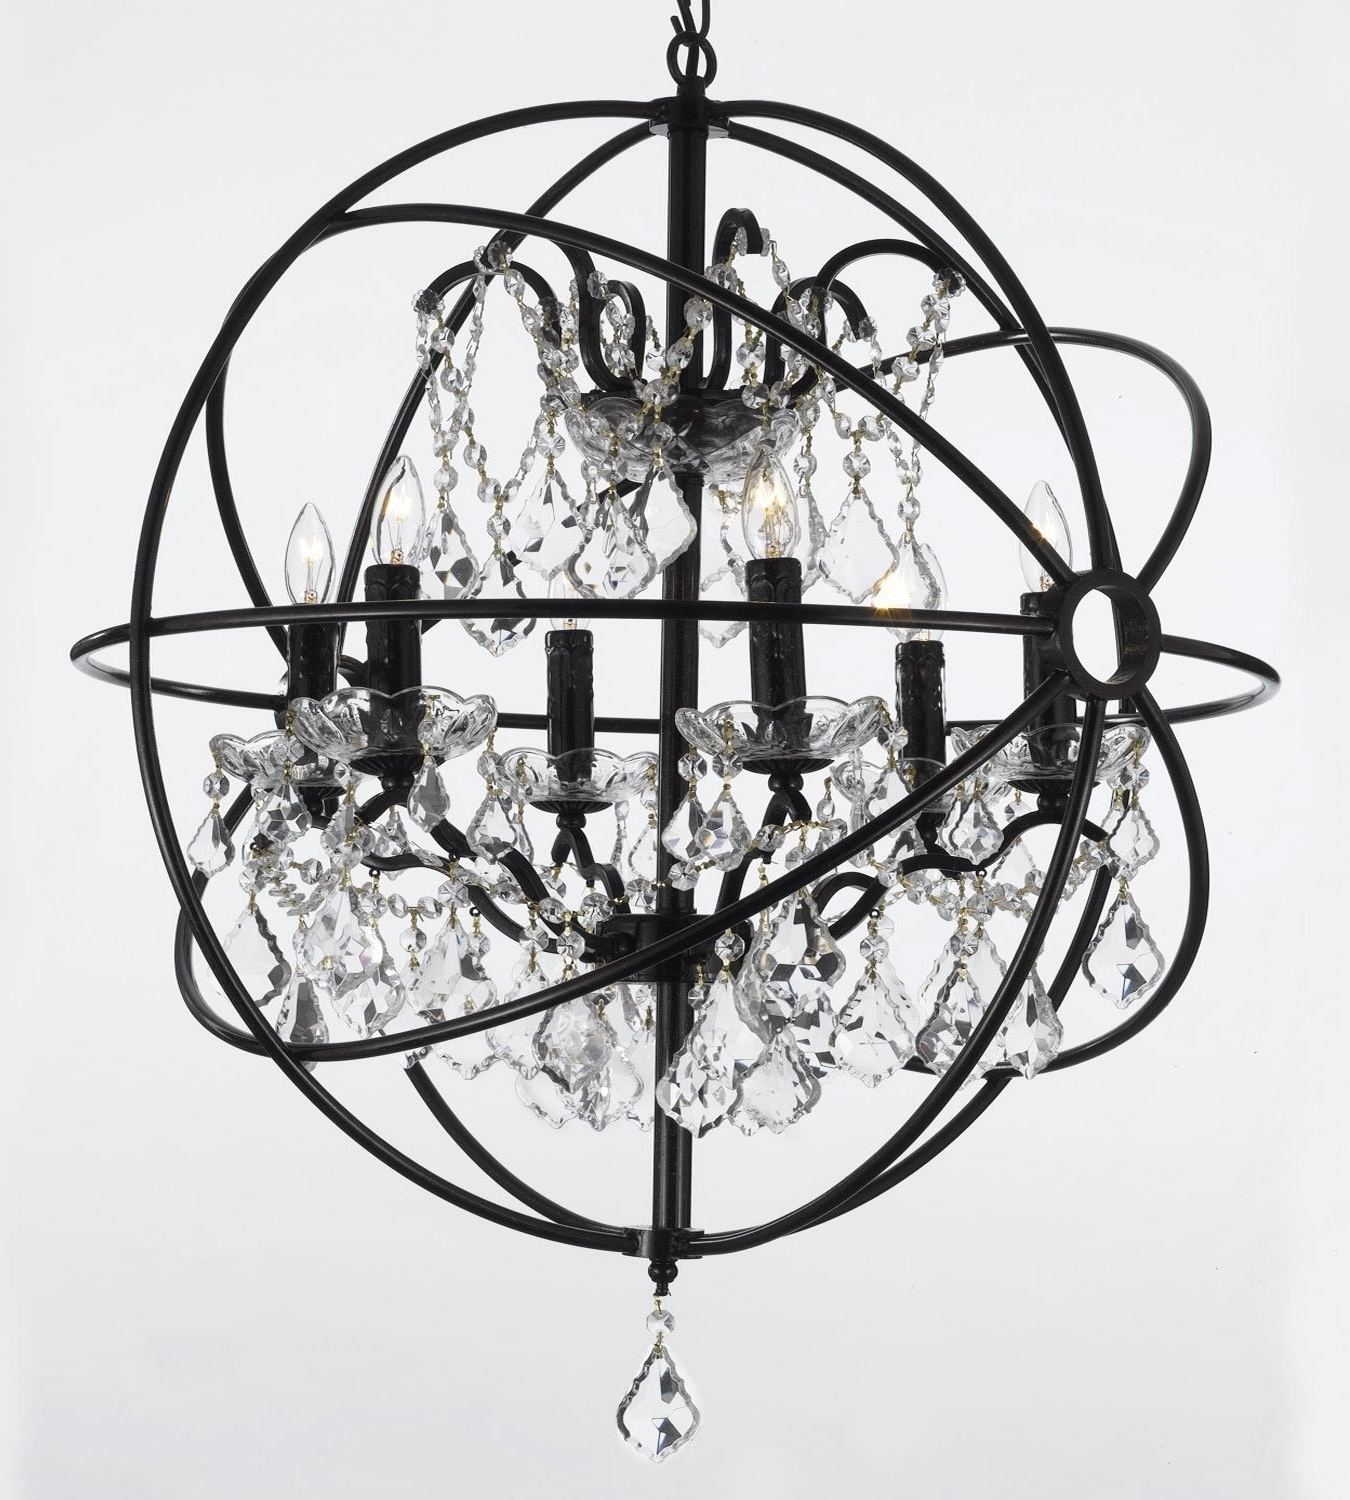 Foucault's Orb Wrought Iron Crystal Chandelier Lighting Country Throughout 2018 Orb Chandelier (View 8 of 15)